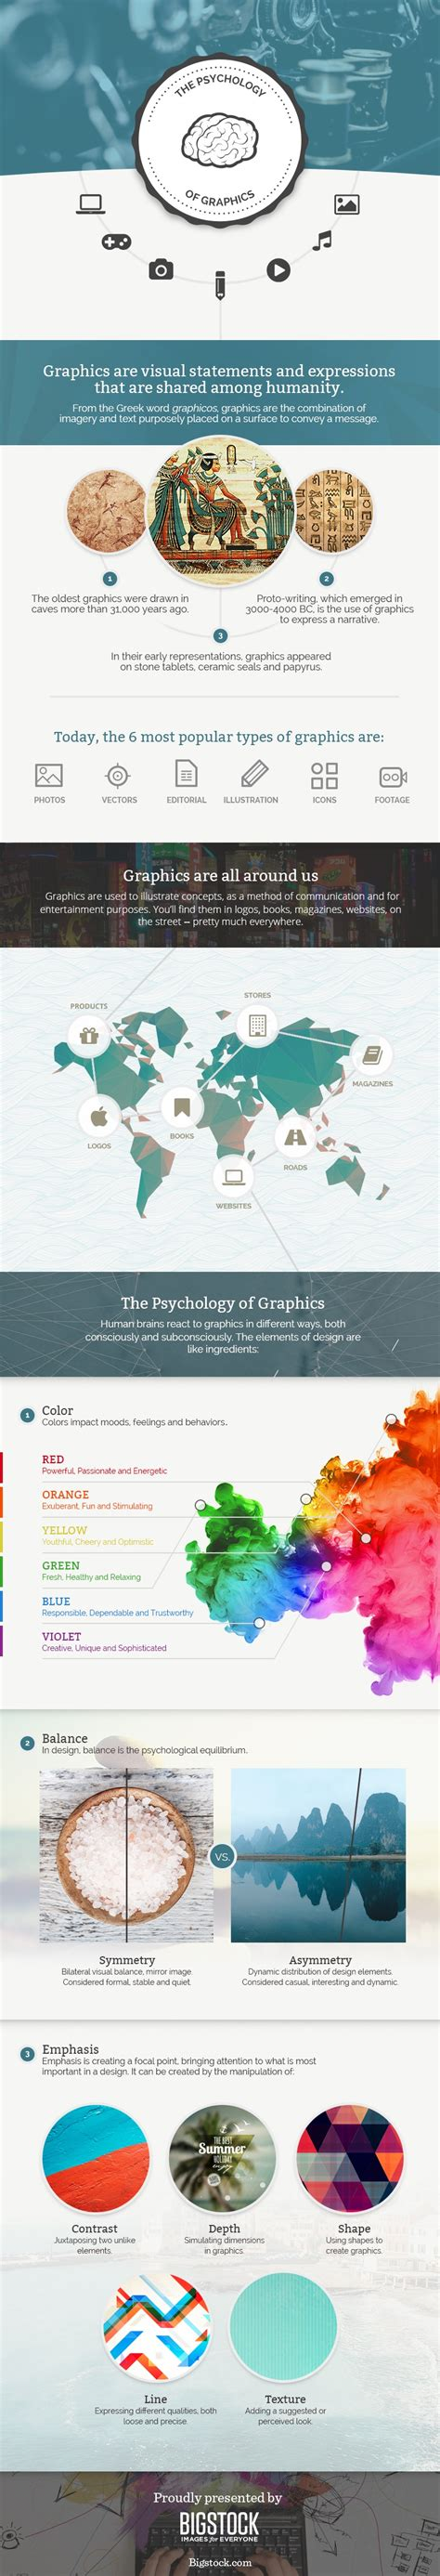 infographic the psychology of graphics bigstock blog the color of your marketing matters infographic